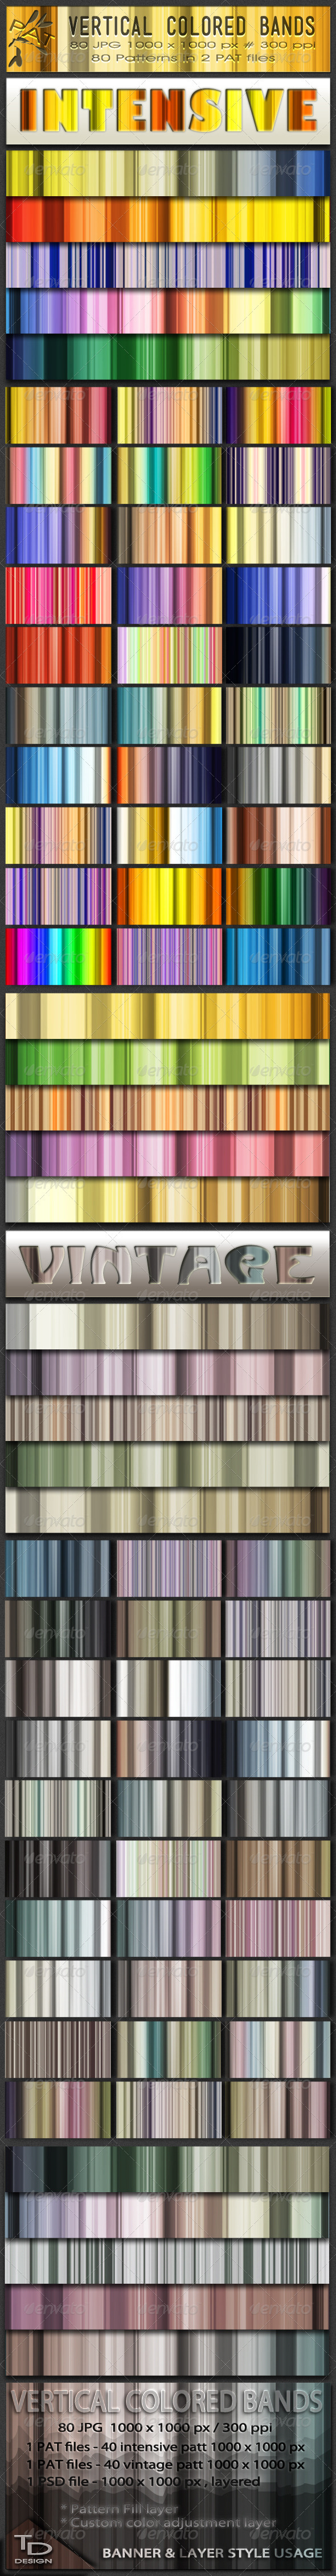 Vertical Colored Bands Patterns Set - Abstract Textures / Fills / Patterns